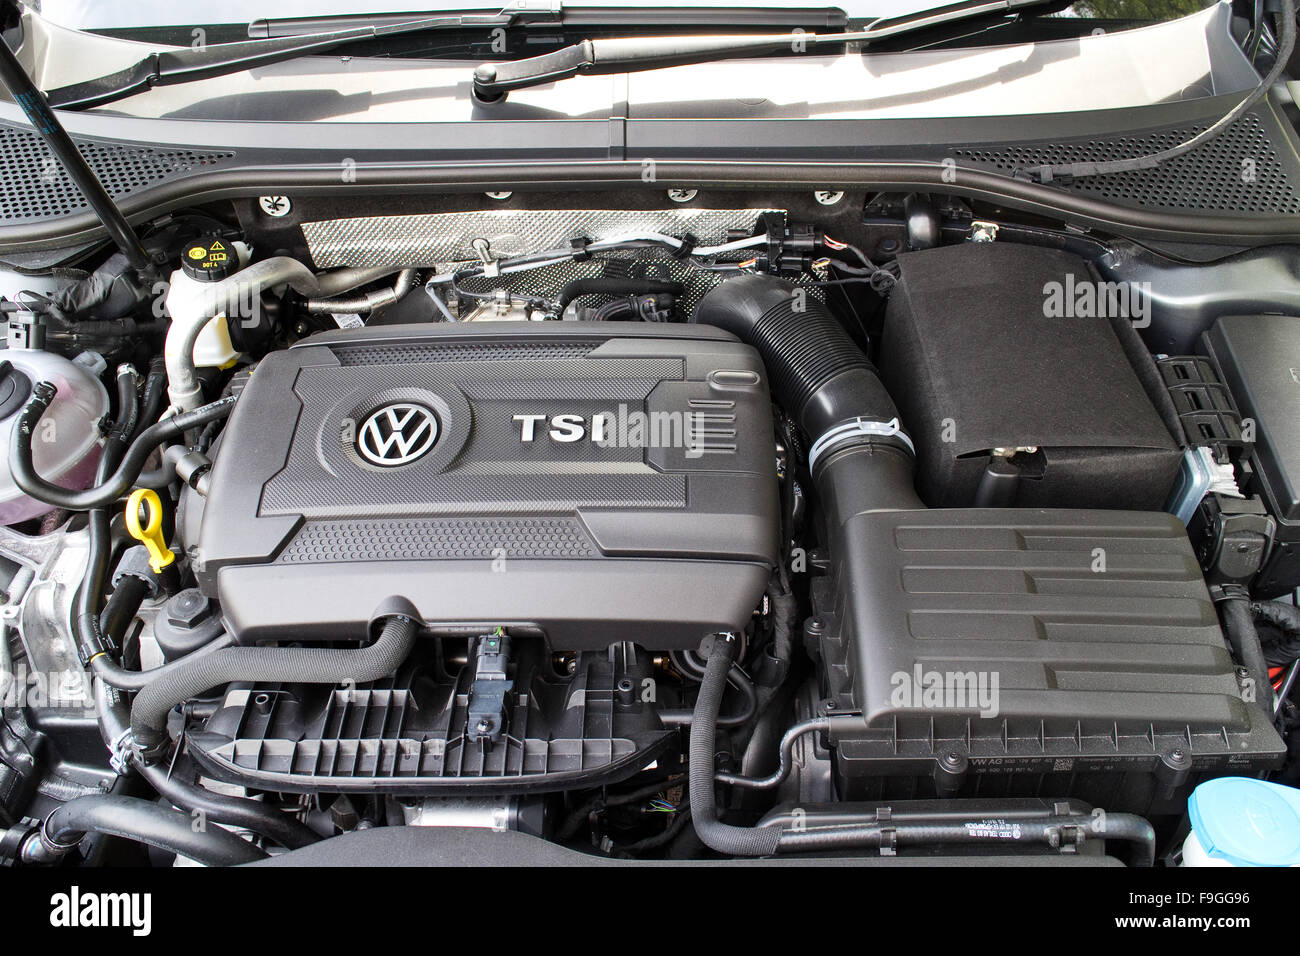 Volkswagen Passat 2015 High Resolution Stock Photography And Images Alamy